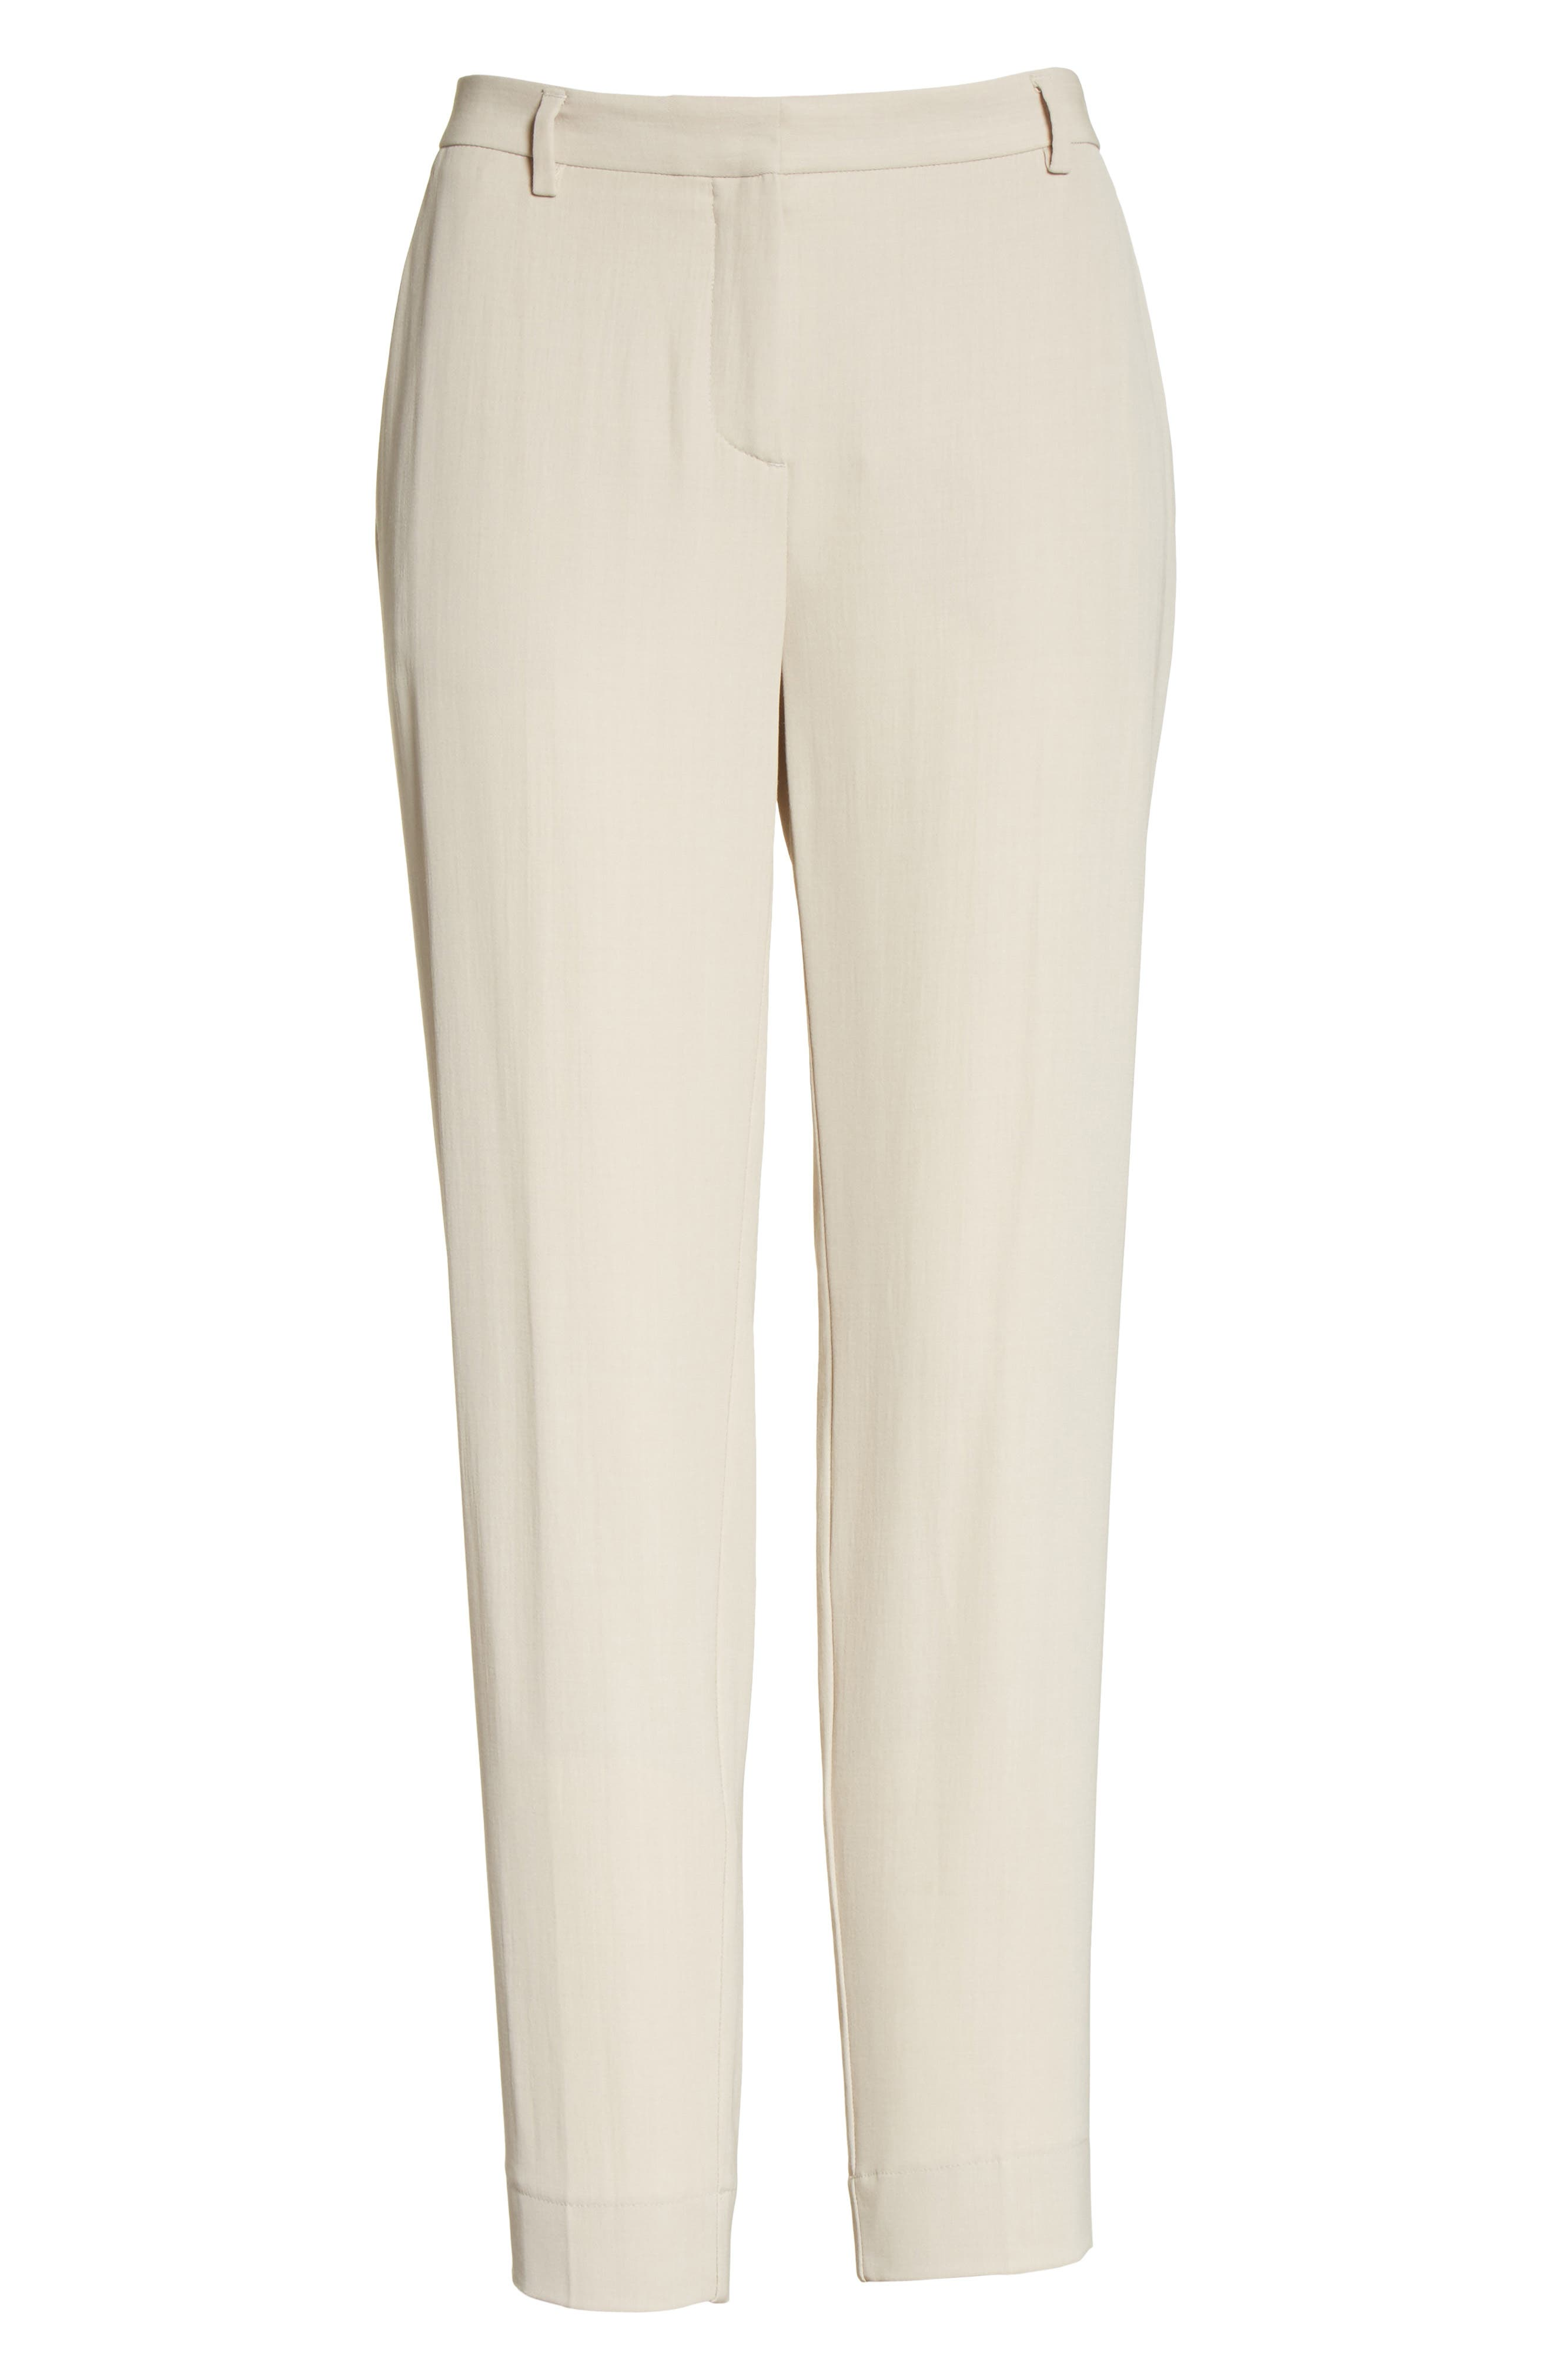 Wool Blend Ankle Pants,                             Alternate thumbnail 6, color,                             250